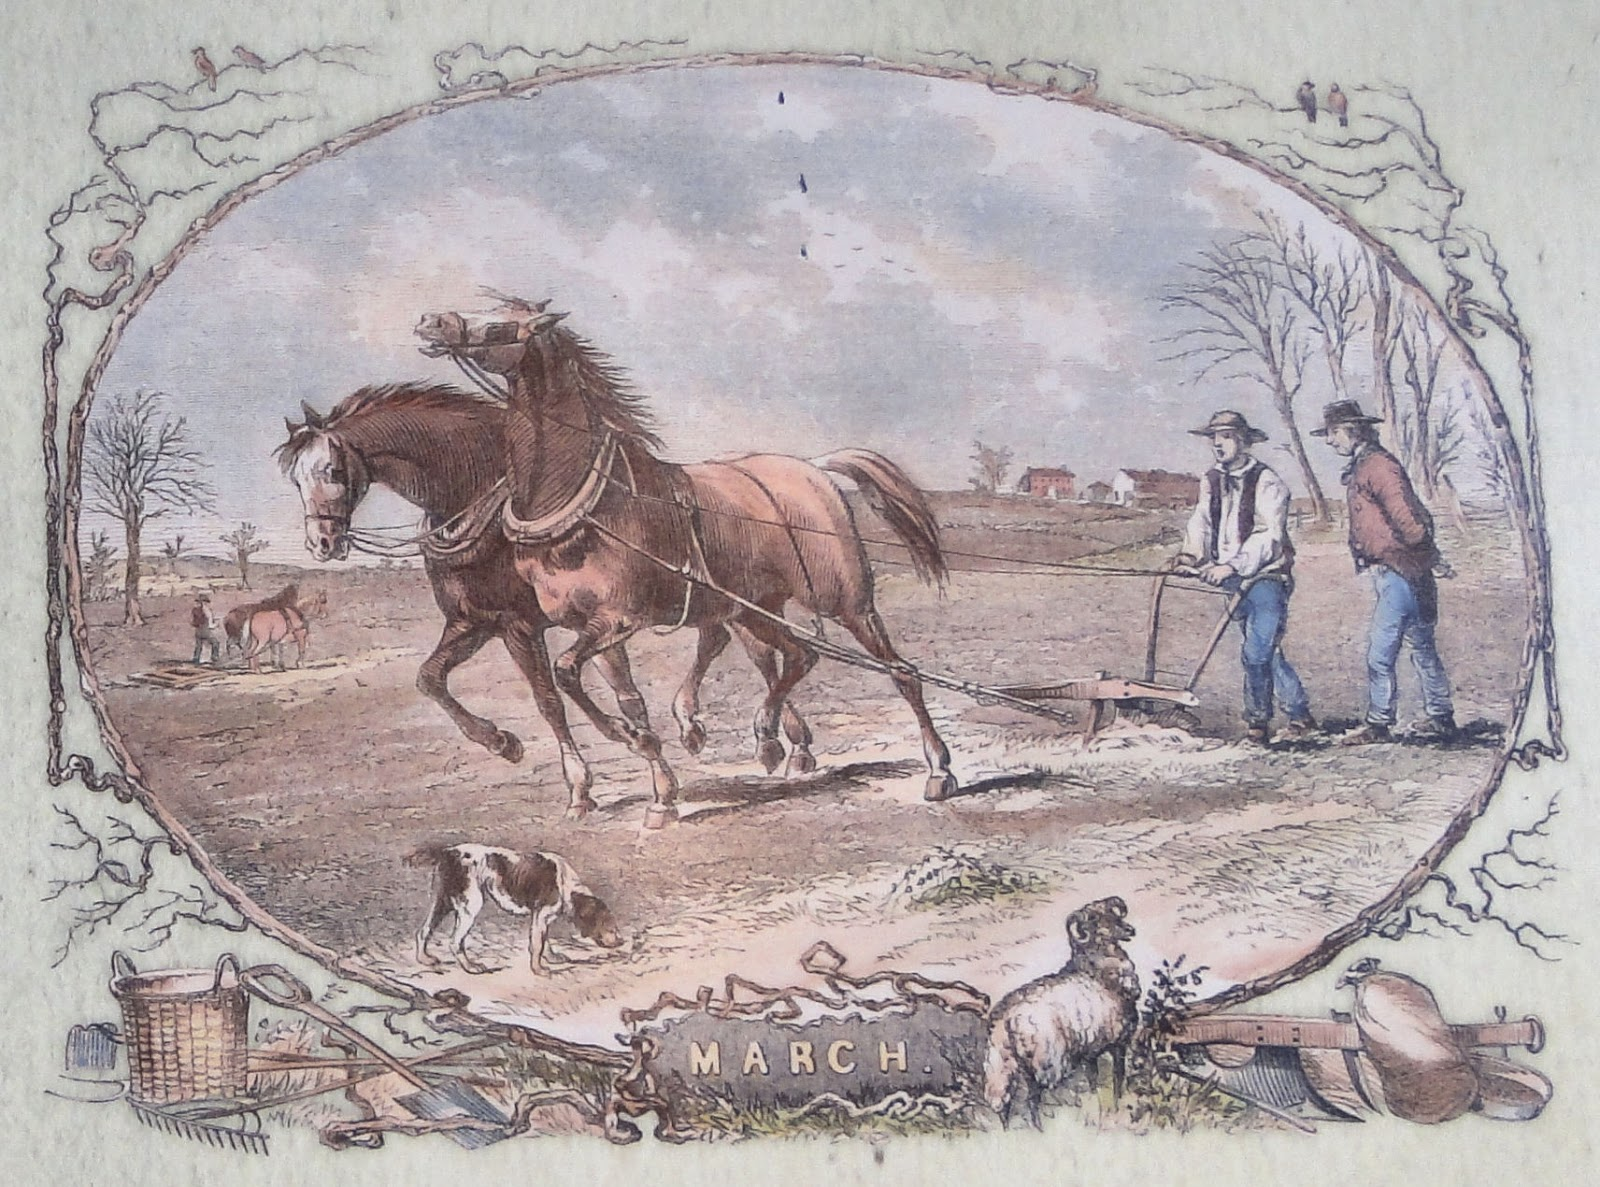 Passion for the Past: Early Farming & Farm Tools From Days